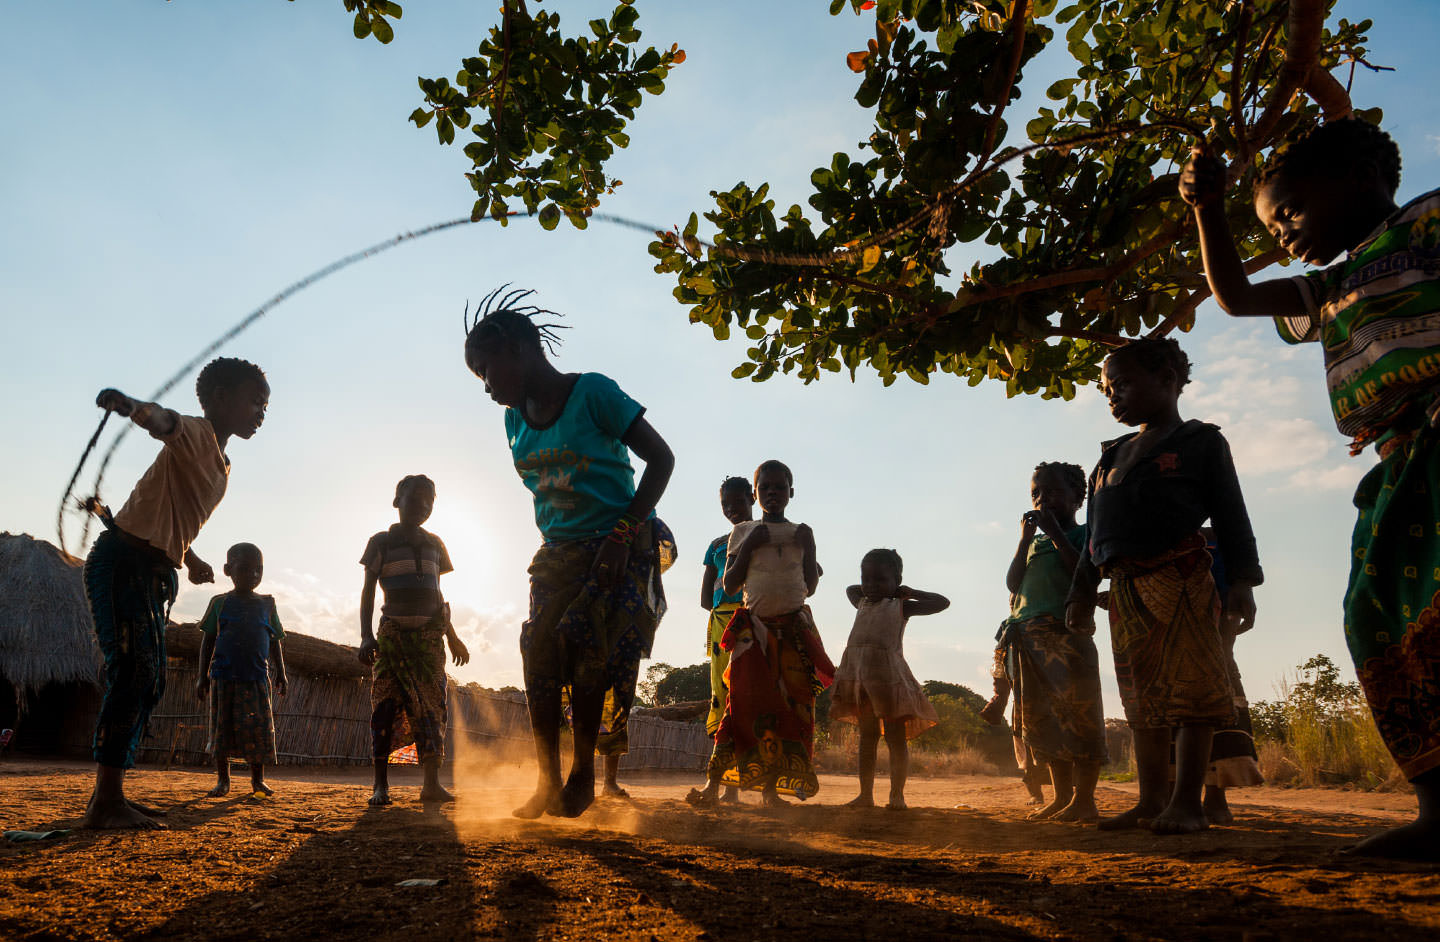 While playing with her friends, the last thing on Delfina's mind is malaria.